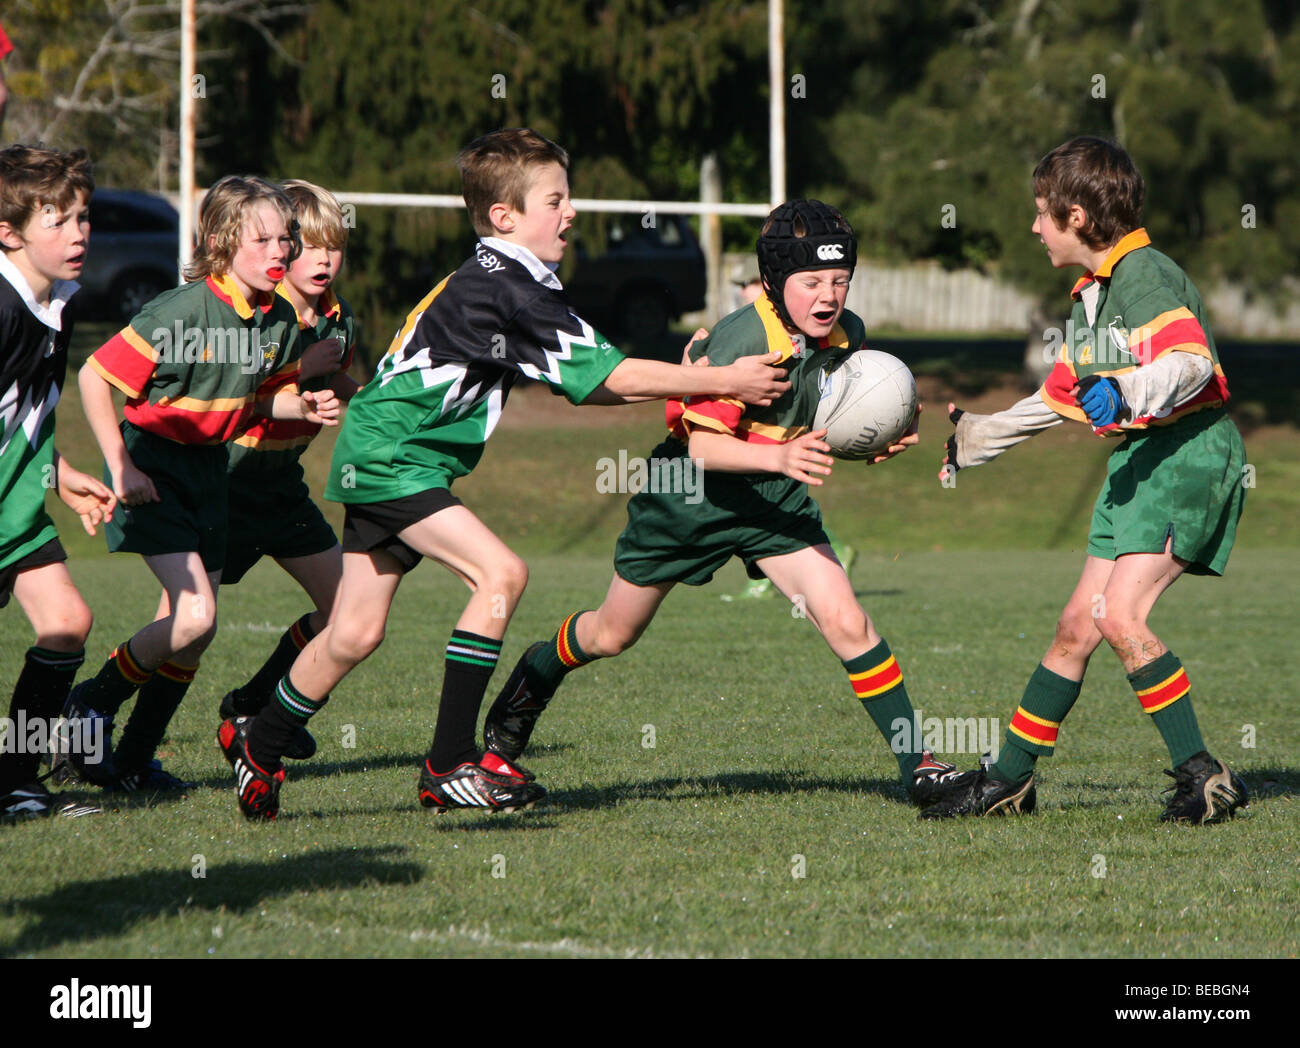 Young boys play rugby union in New Zealand - Stock Image